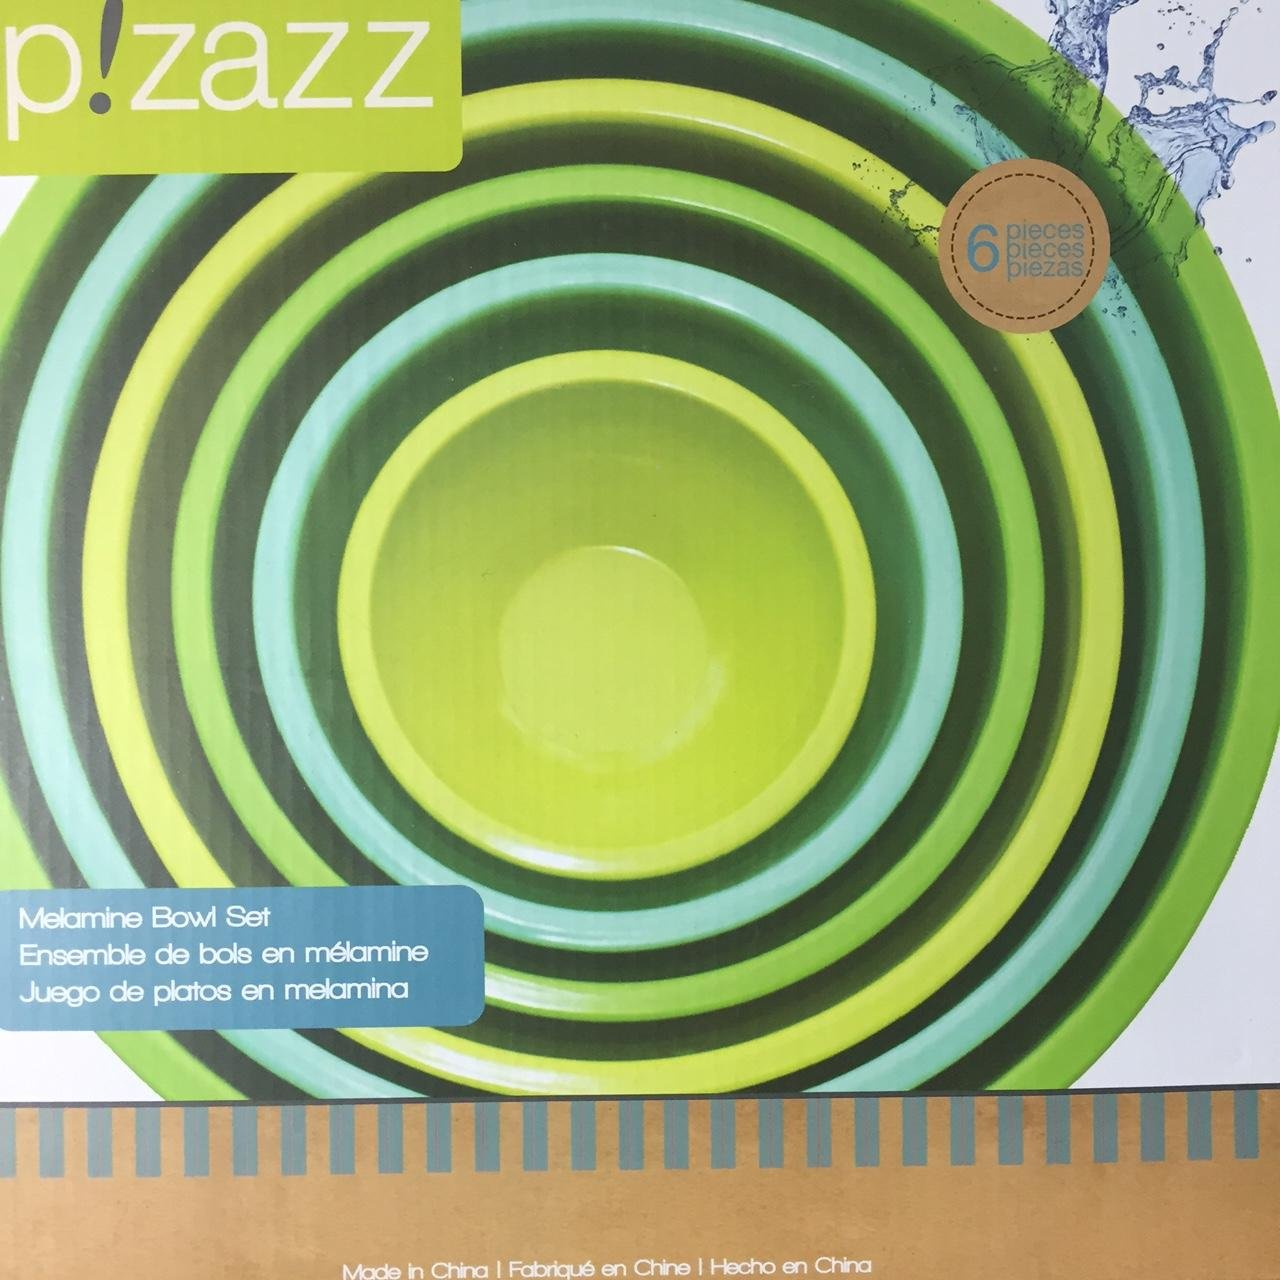 Amazon.com | New Pizazz 6-piece Melamine Bowl Set in Retro / Vintage Colors of Blue and Green: Pasta Bowls